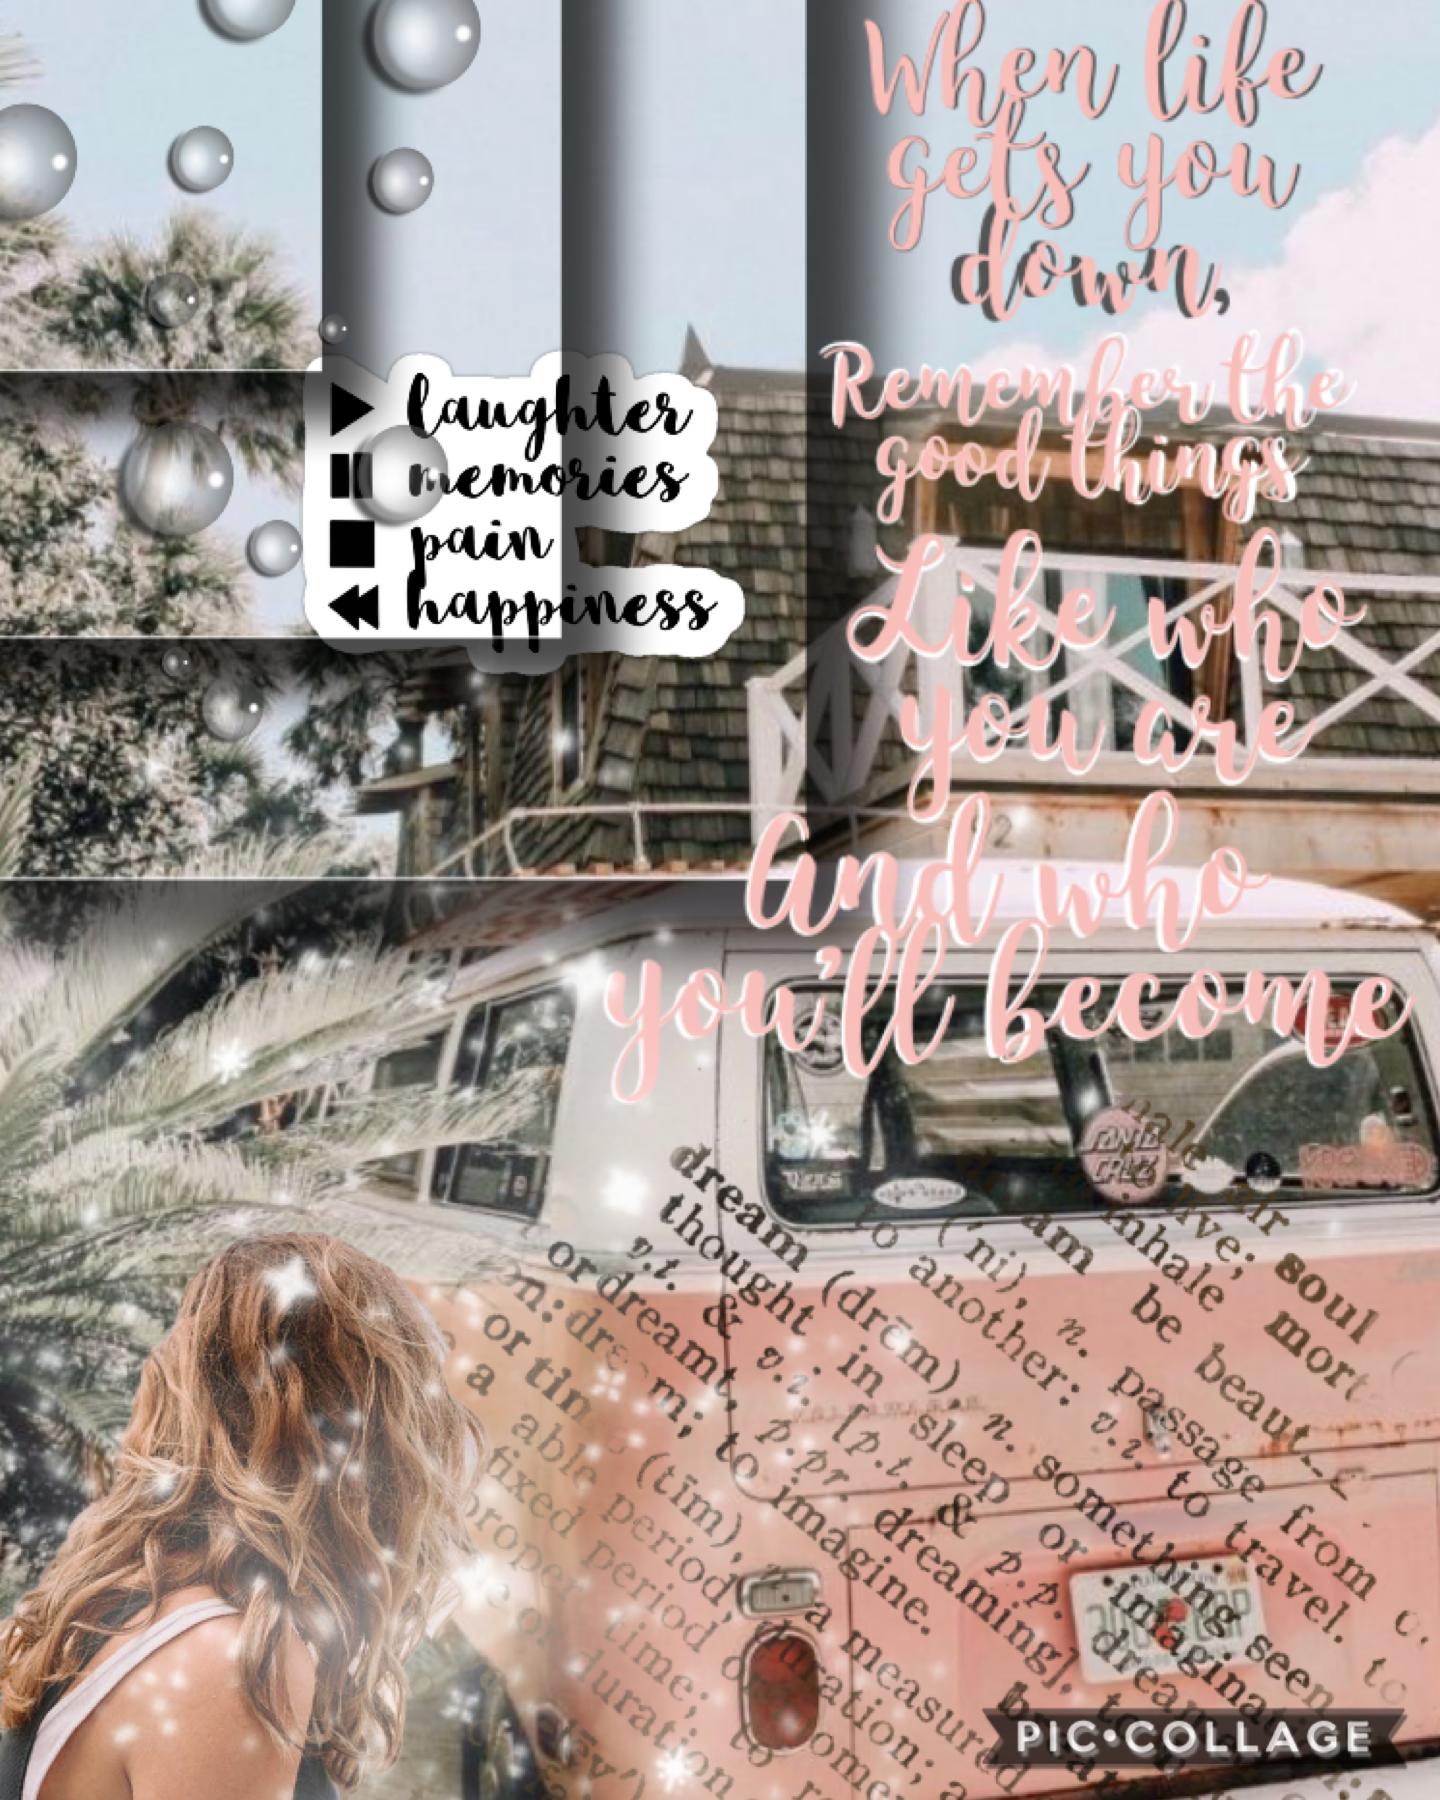 🌸TAP🌸 This took me a long time but I think it turned out really good. Like if you agree!